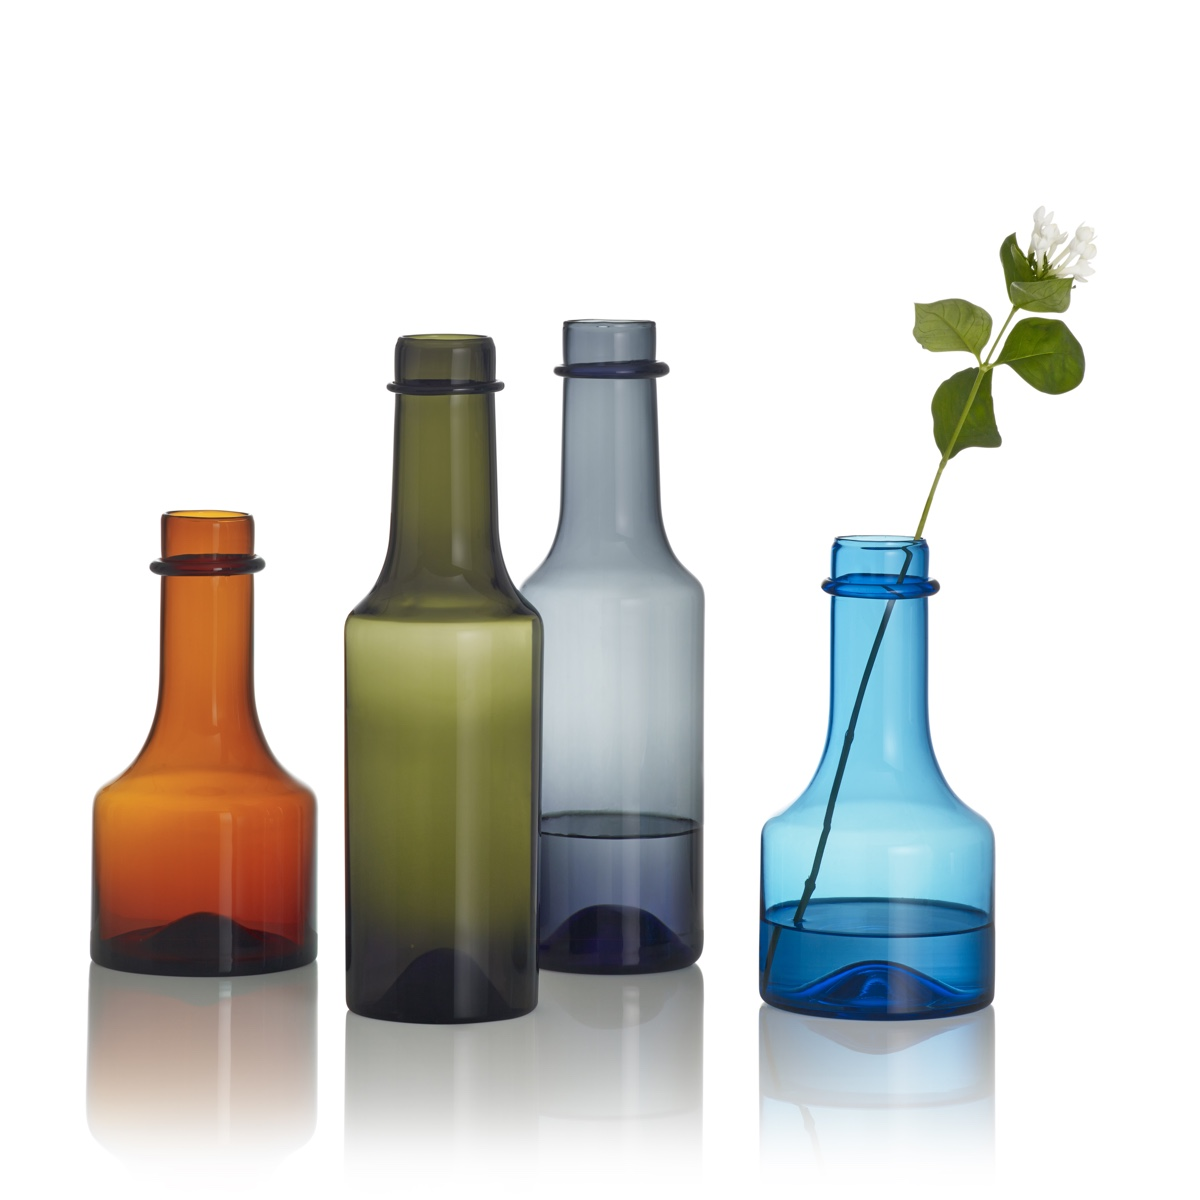 Wirkkala glass bottles. Designed by Tapio Wirkkala and originally produced by Iittala between 1959 and 1968. Image © Fiskars Finland.